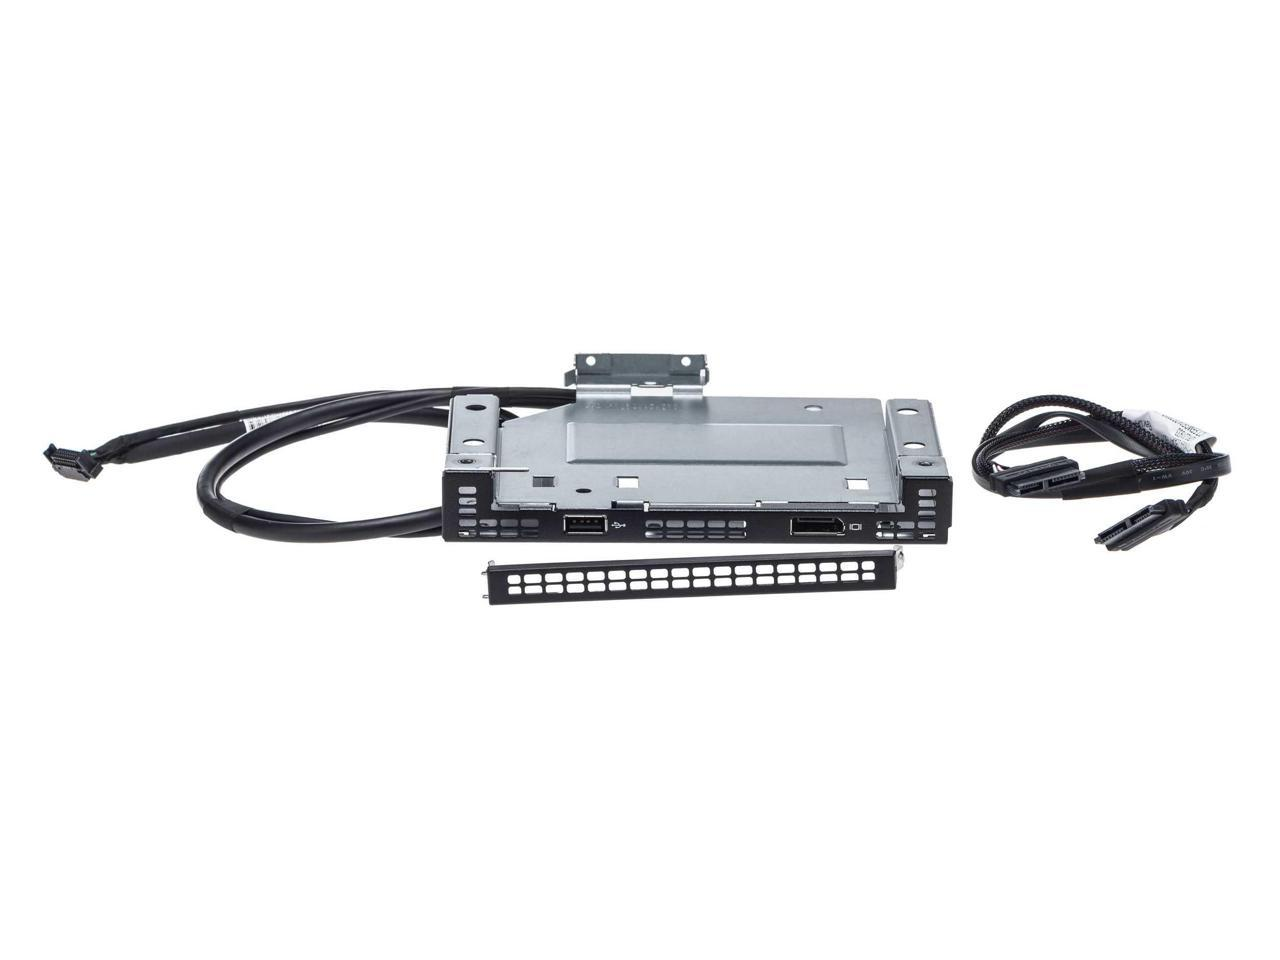 HPE DL360 Gen10 8SFF Display Port/USB/Optical Drive Blank Kit 868000-B21